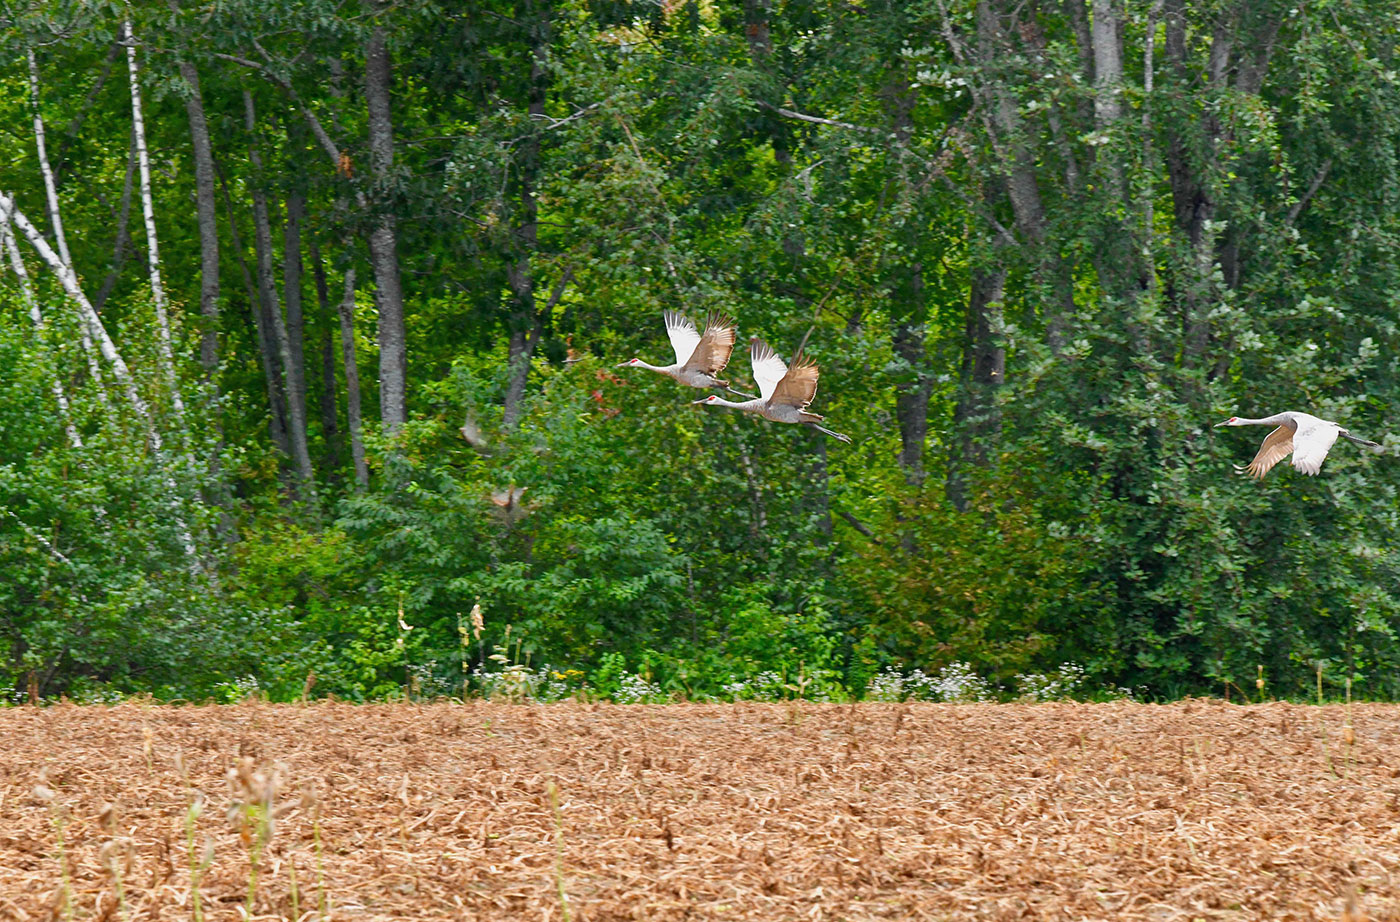 Sandhill-Cranes-in-flight-Tom-McLaughlin-2019